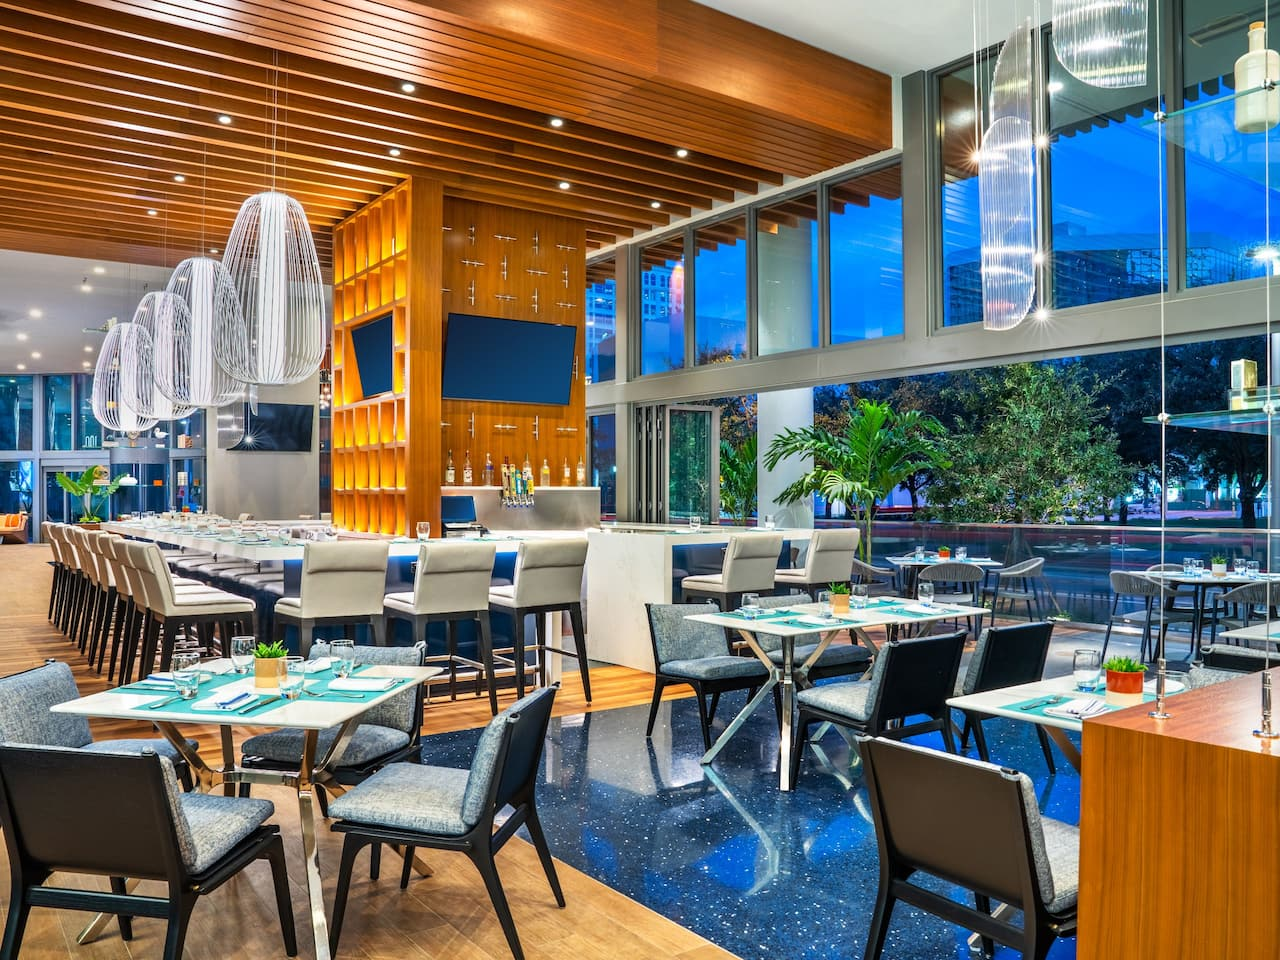 Dining and Bar Set Up at Harborwood Restaurant Inside Hyatt Centric Las Olas/Fort Lauderdale